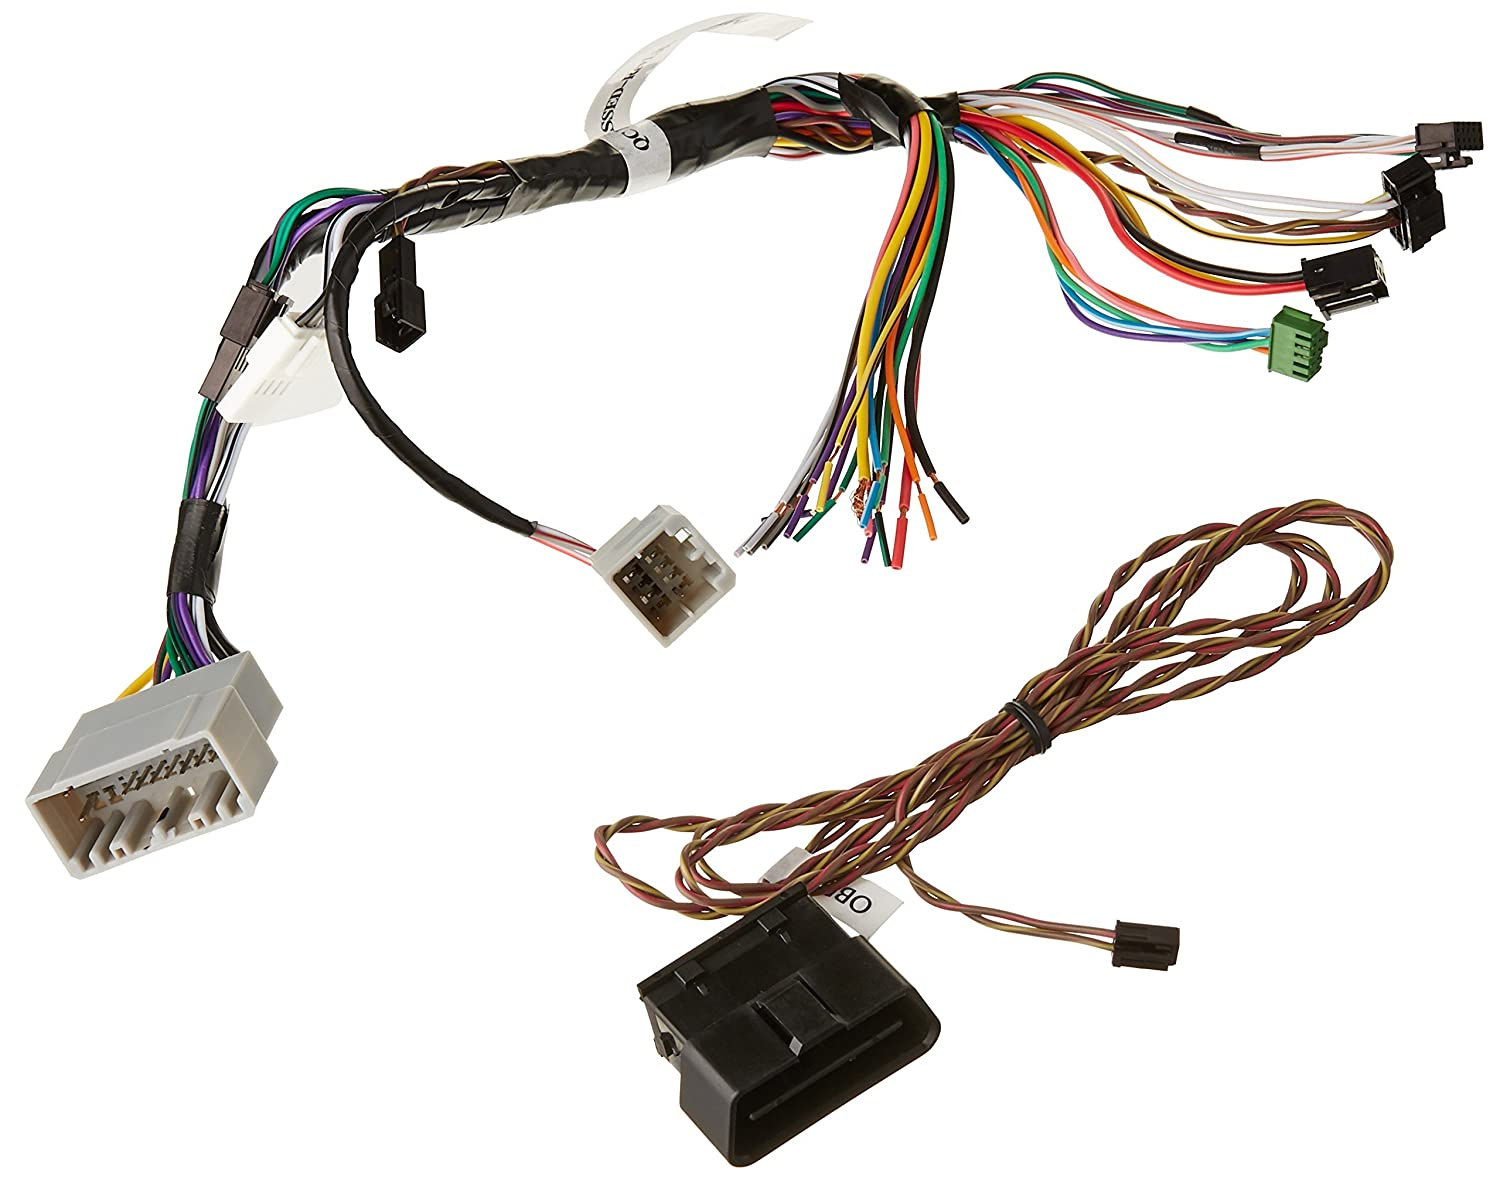 Maestro HRN-RR-CH2 Plug and Play T-Harness for CH2 Chrysler, Dodge, Jeep Vehicles Big 5 Electronics